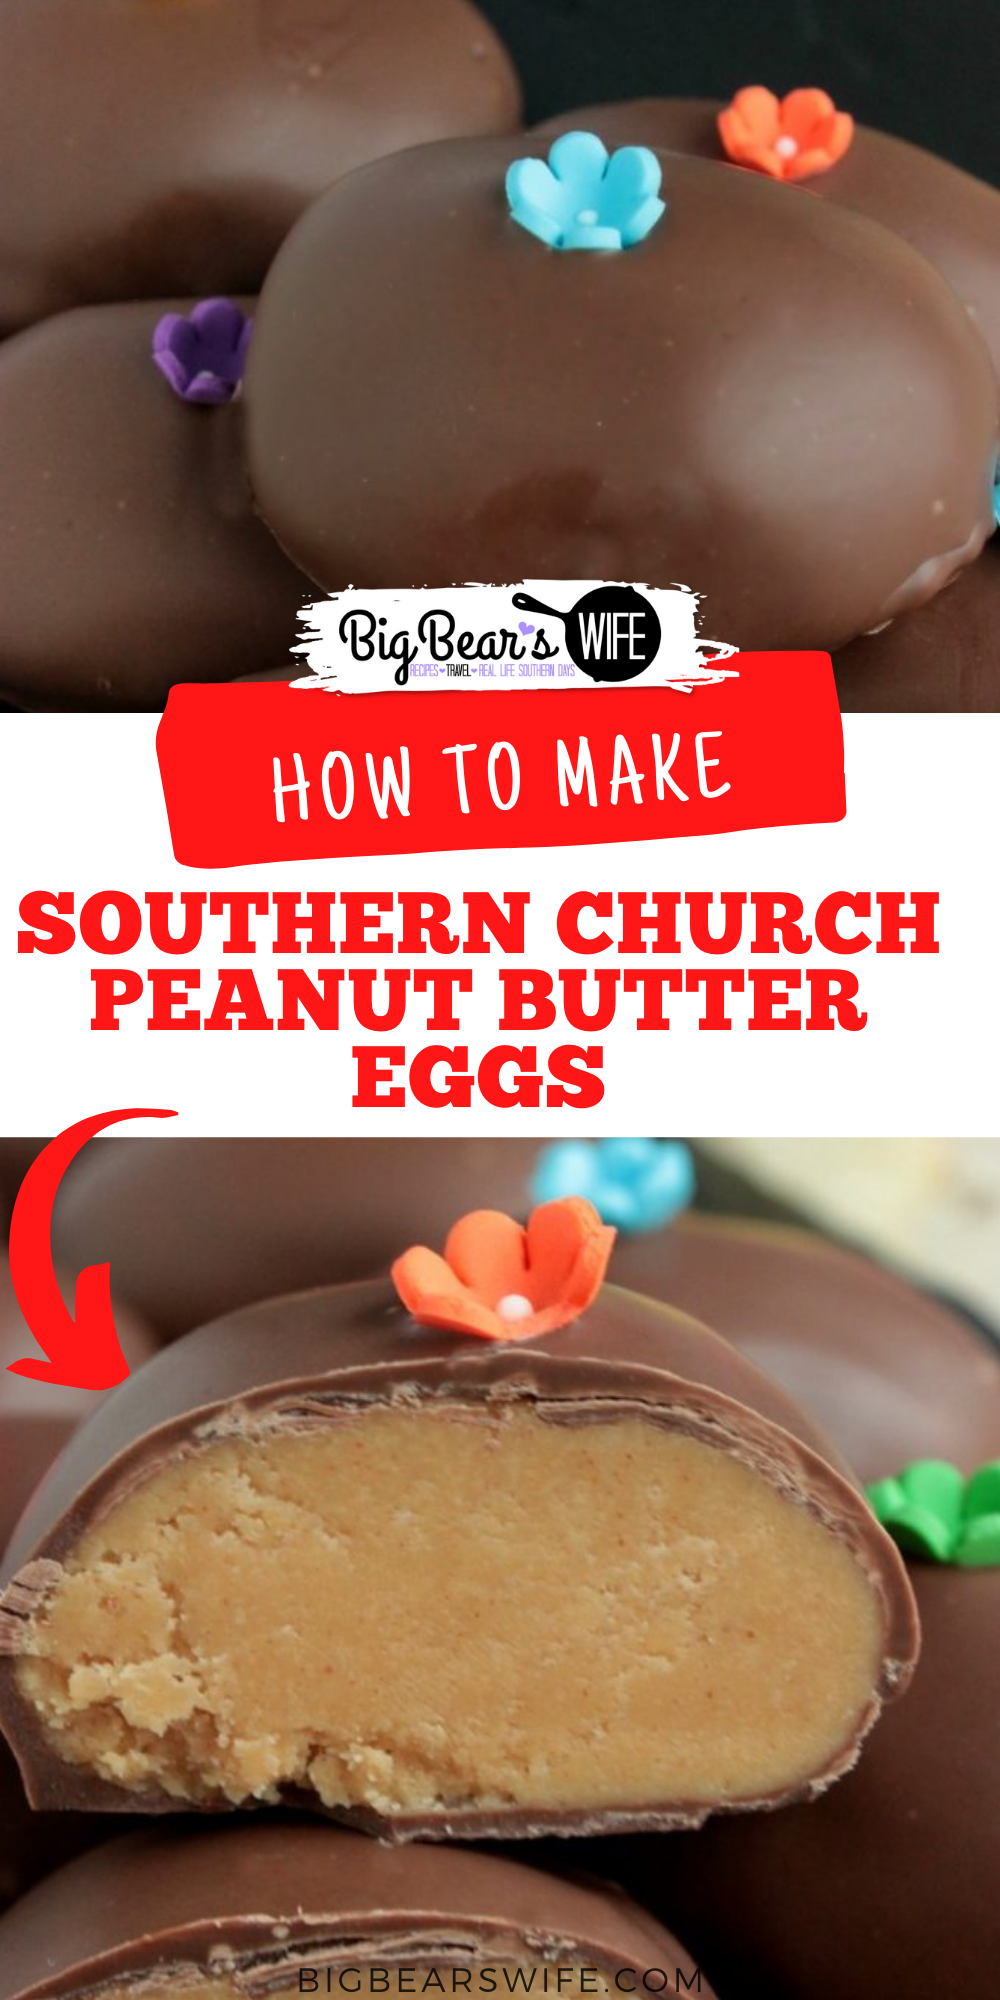 Love the Chocolate Peanut Butter Eggs that churches make around Easter time? These Southern Church Peanut Butter Eggs are just like those, they're perfect and taste amazing!   via @bigbearswife